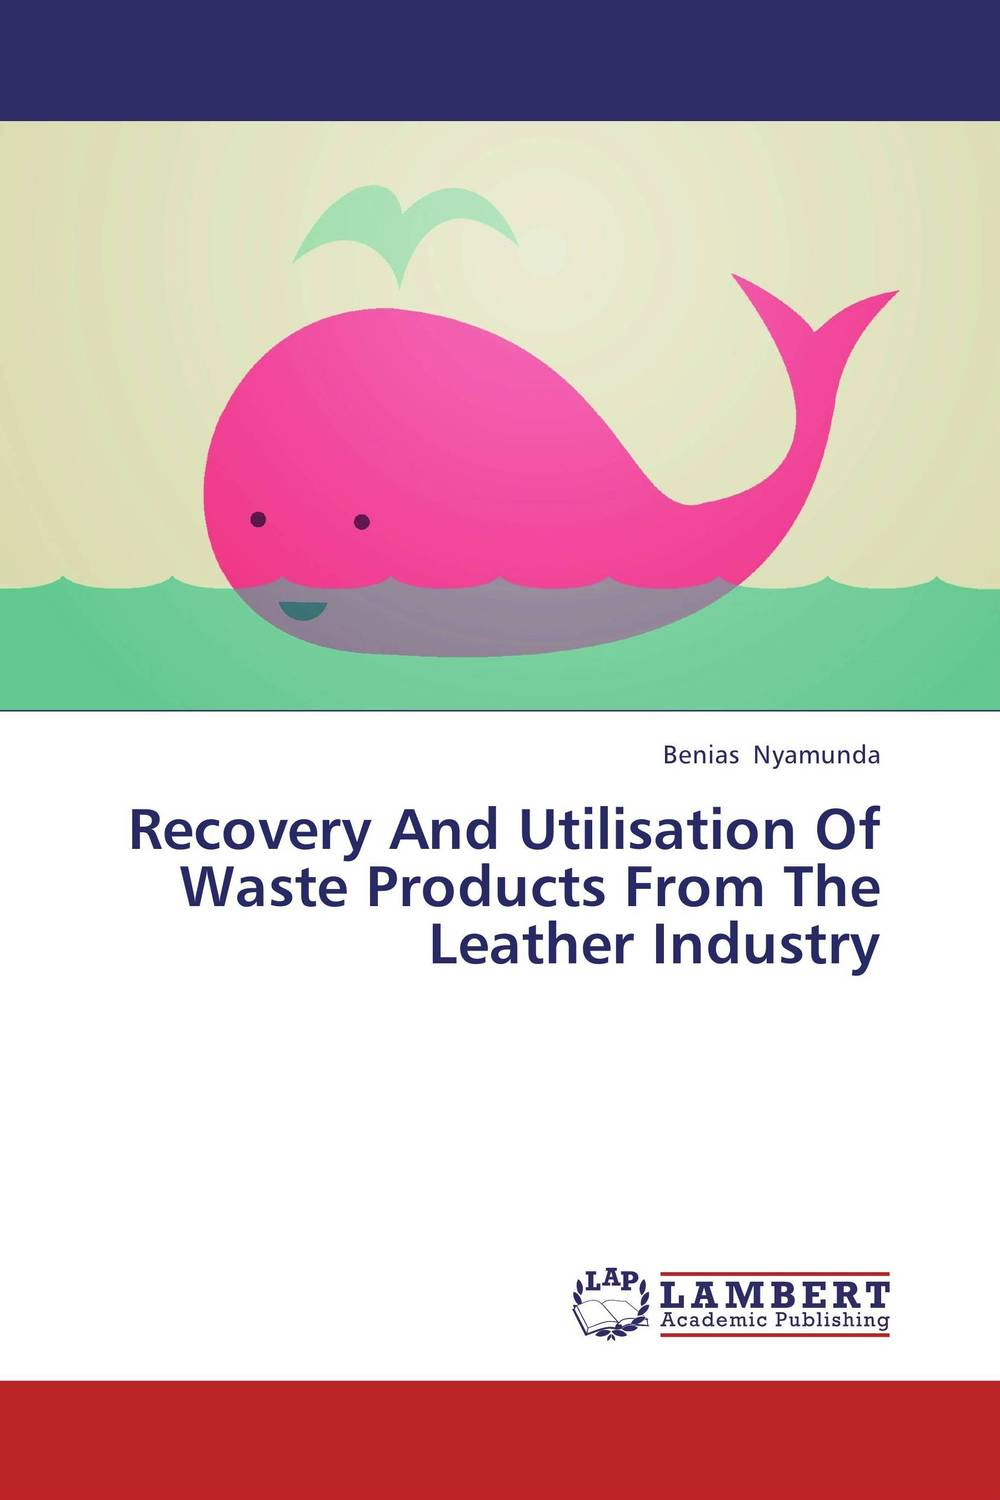 Recovery And Utilisation Of Waste Products From The Leather Industry